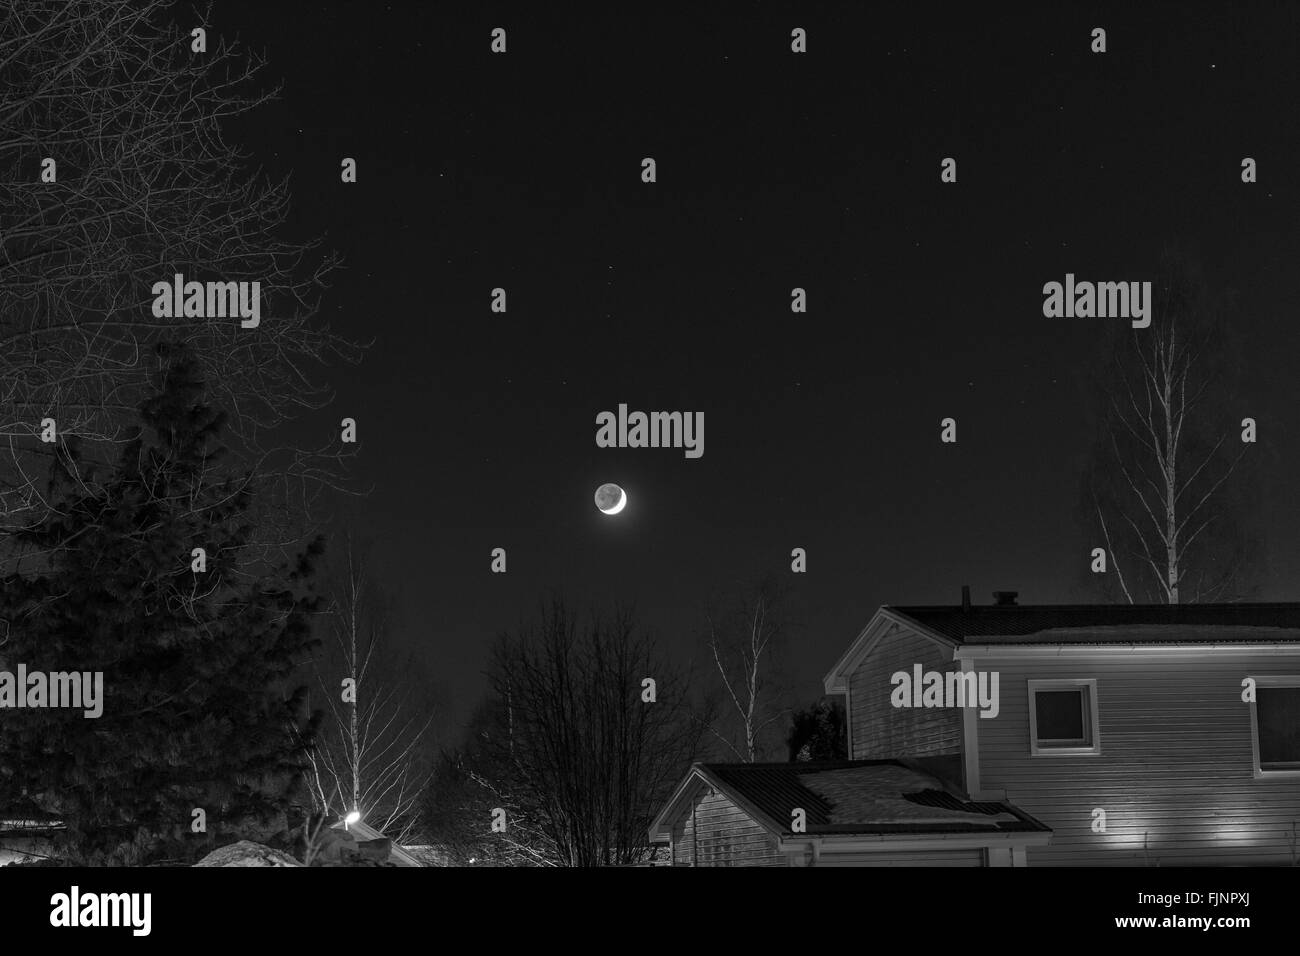 Low Angle View Of Moon Over Houses And Trees - Stock Image